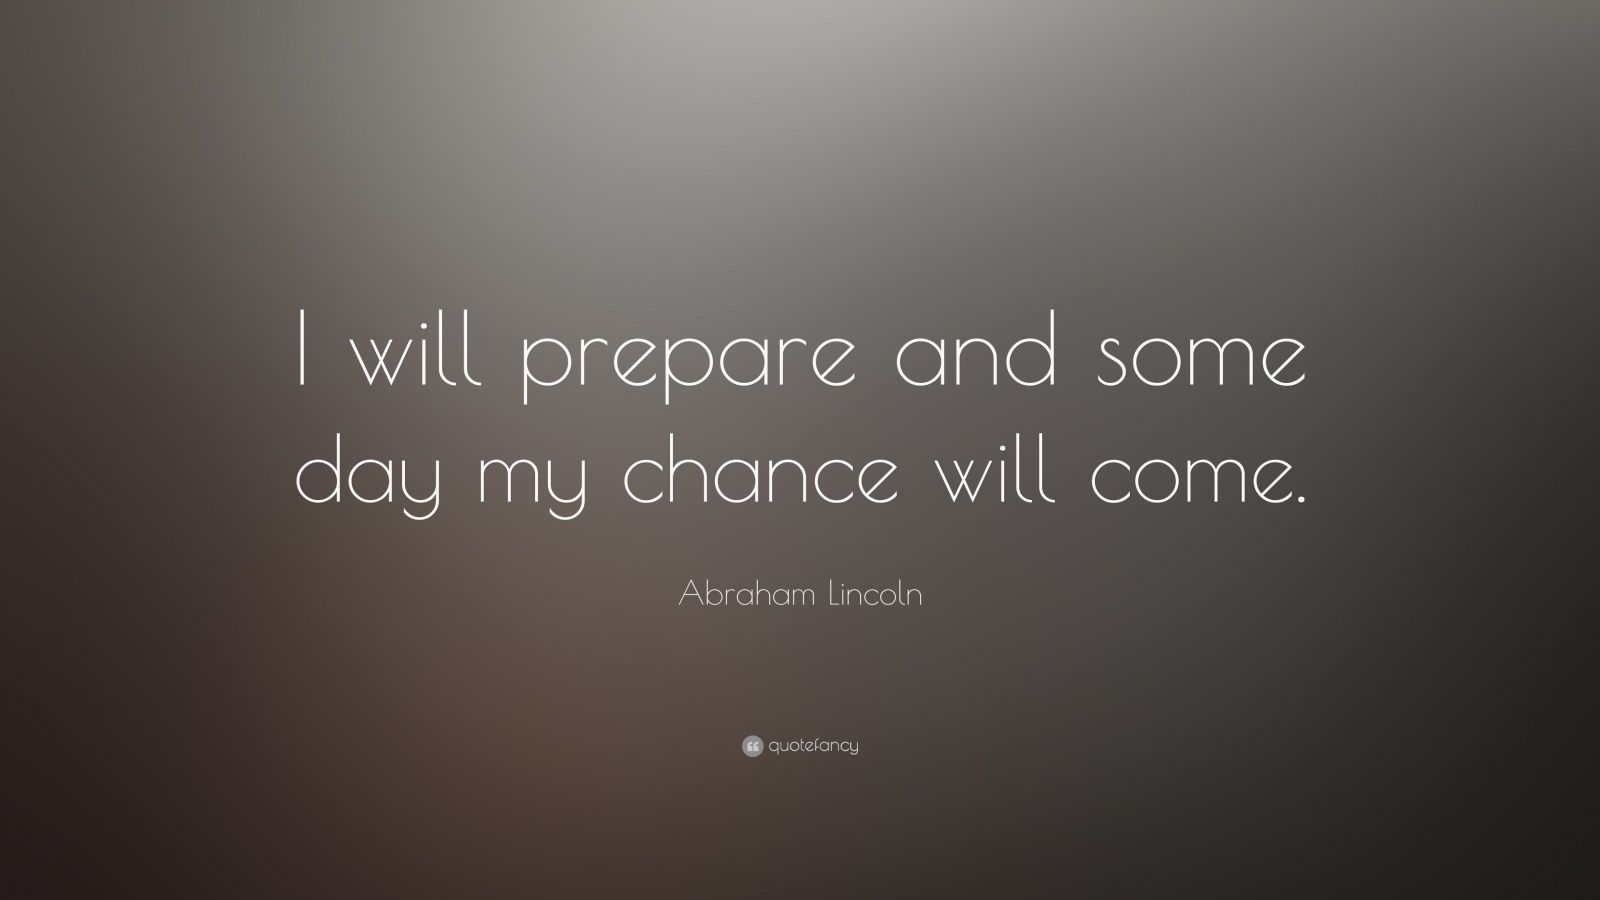 Abraham Lincoln Quote I Will Prepare And Some Day My Chance Will